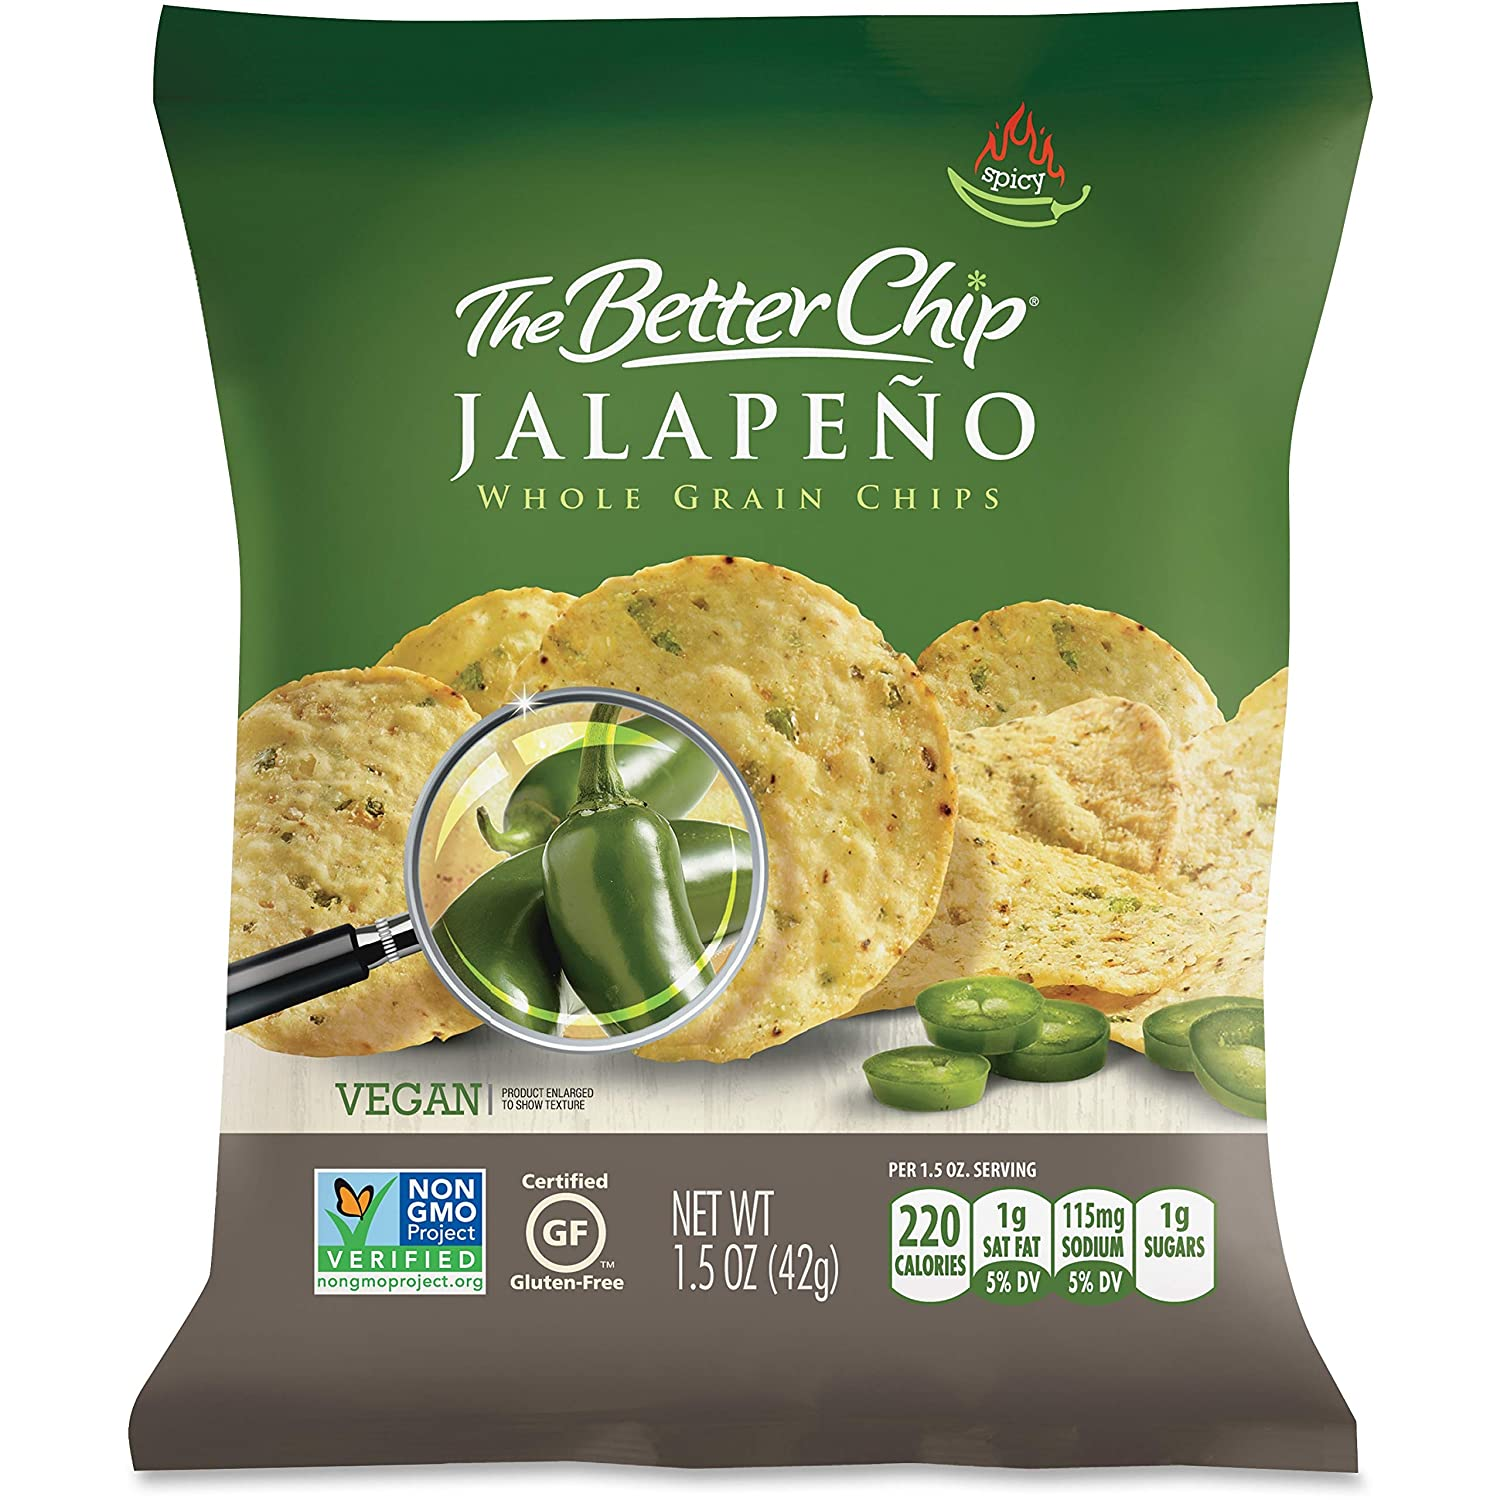 The Better Chip, SUG56097, Jalapeno Chips, 27 / Carton